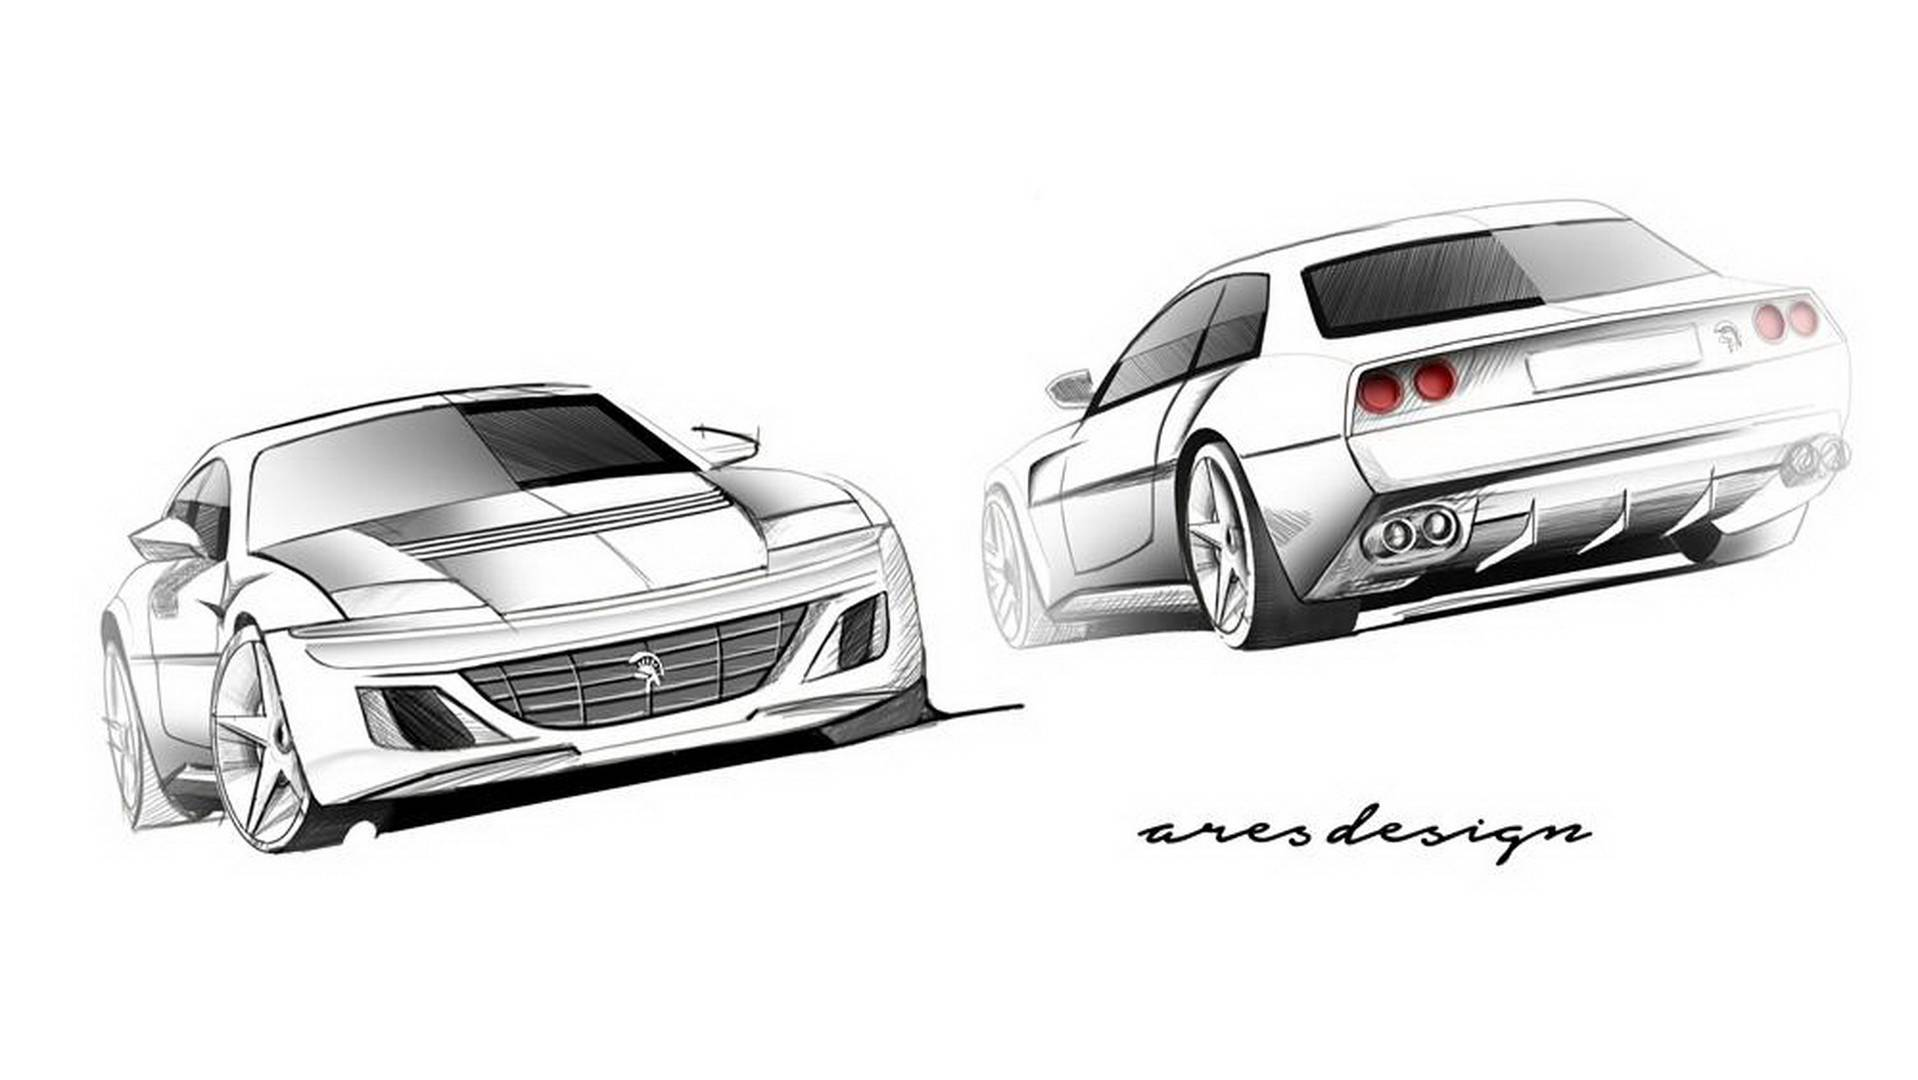 ares-design-project-pony-based-on-ferrari-gtc4lusso